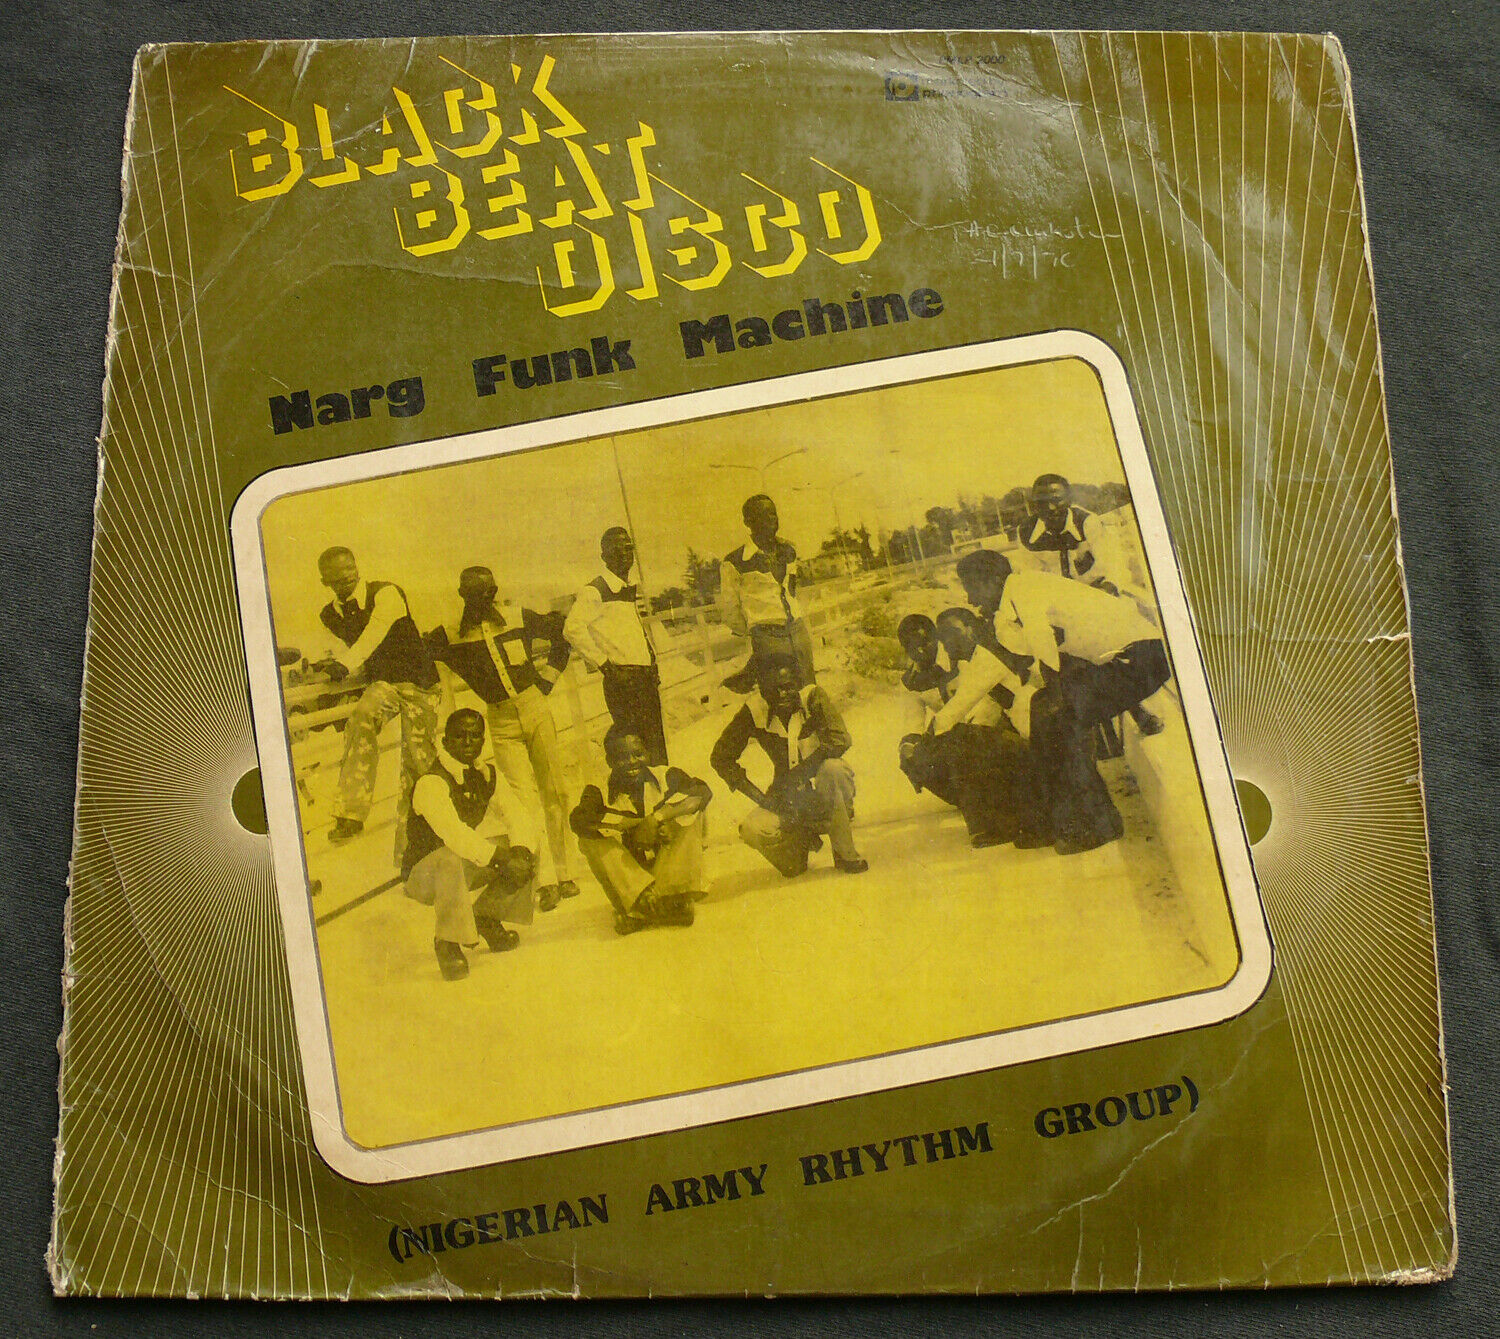 Nigerian Army Rhthym Group- Black beat disco COCONUT afro beat afro funk LISTEN